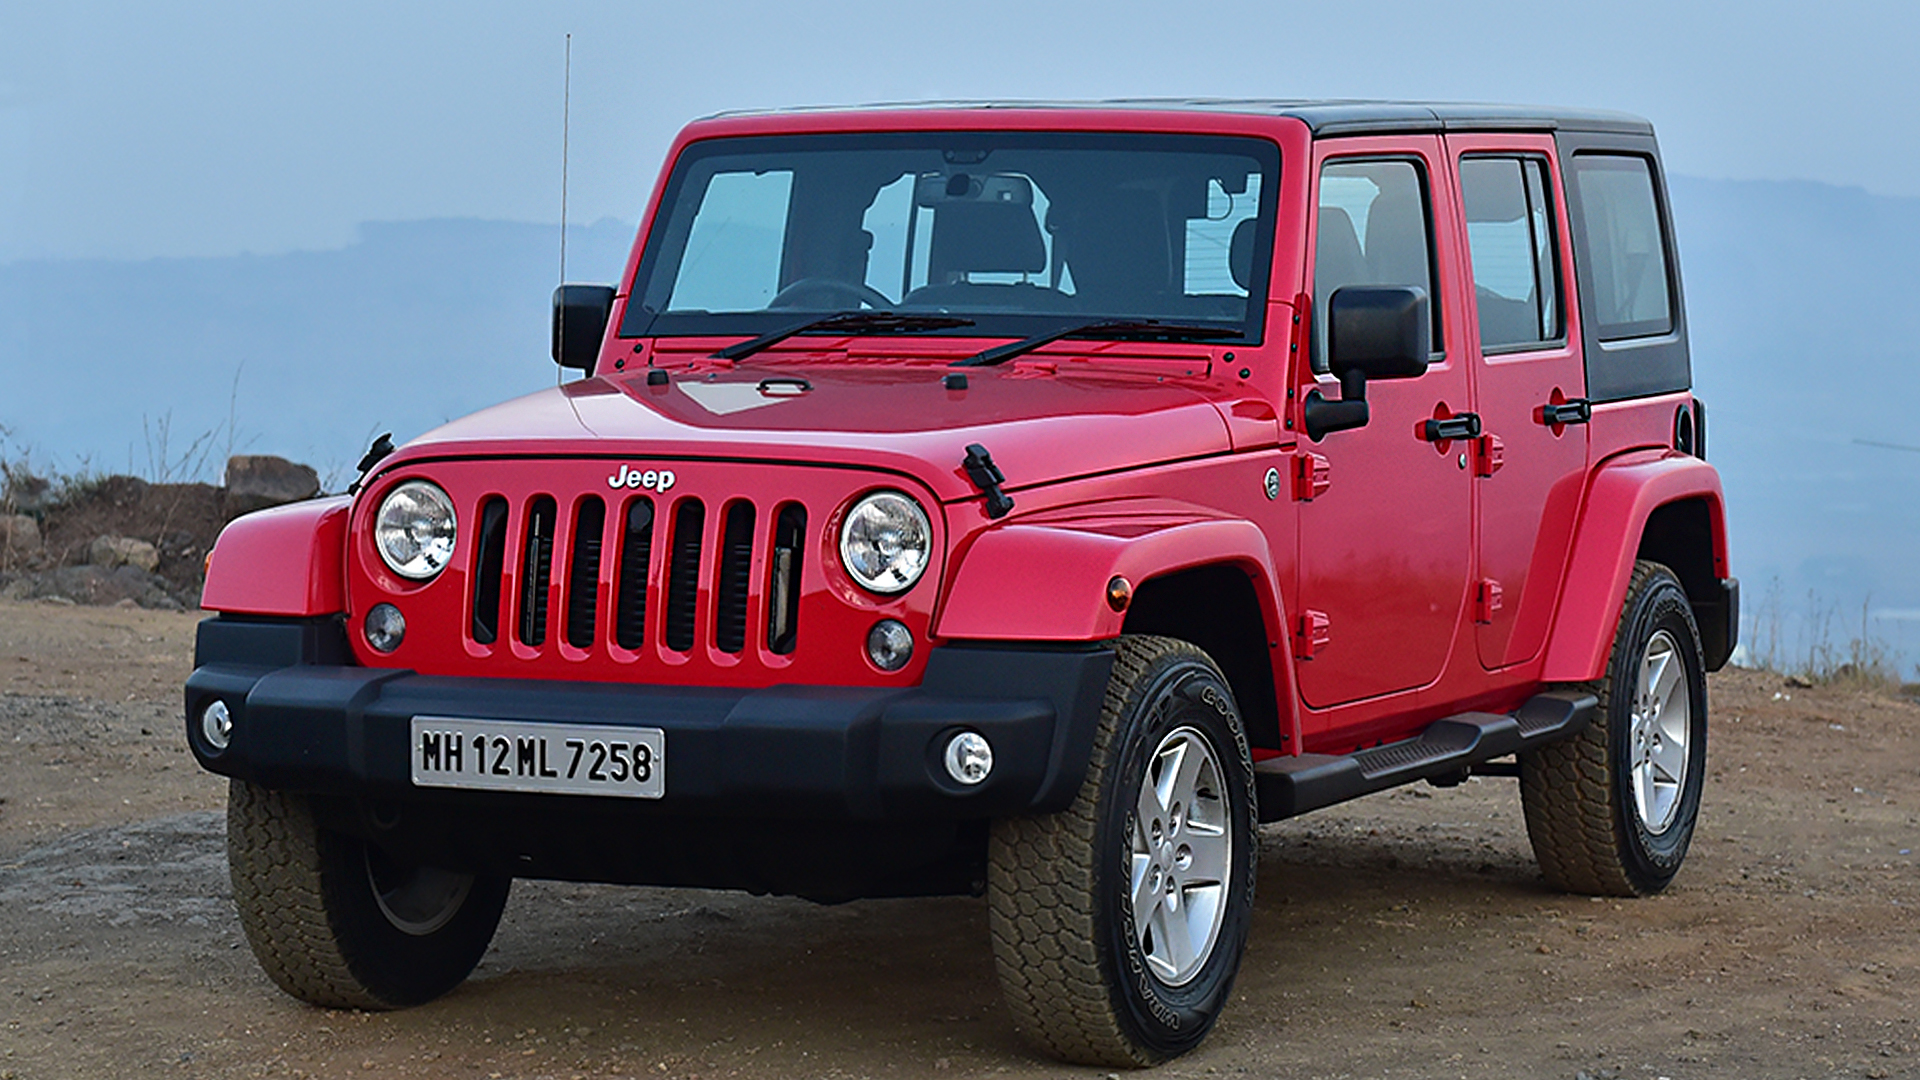 Jeep Wrangler 2016 Unlimited Exterior